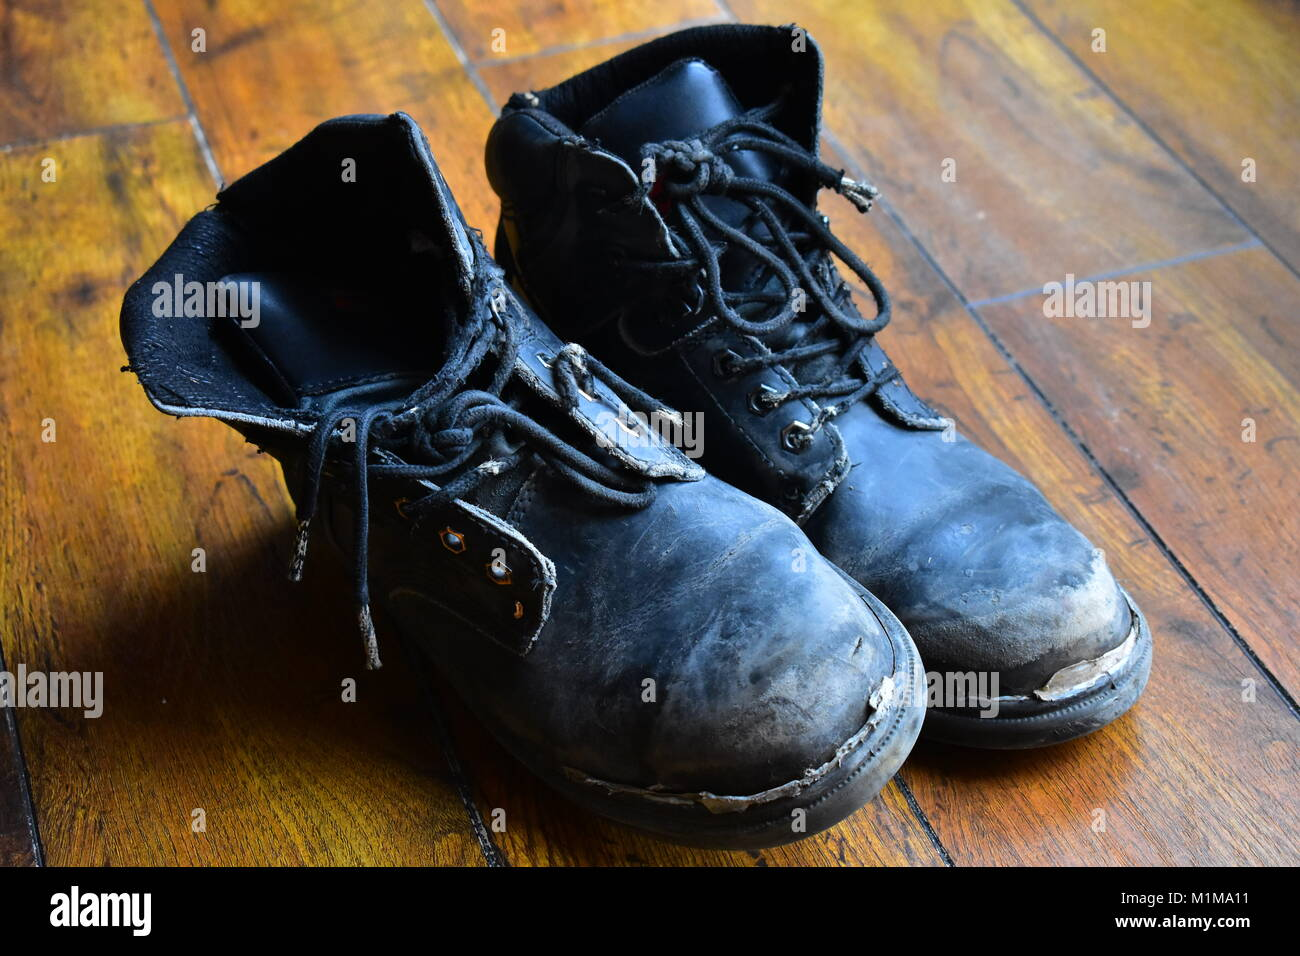 worn out leather work boots - Stock Image